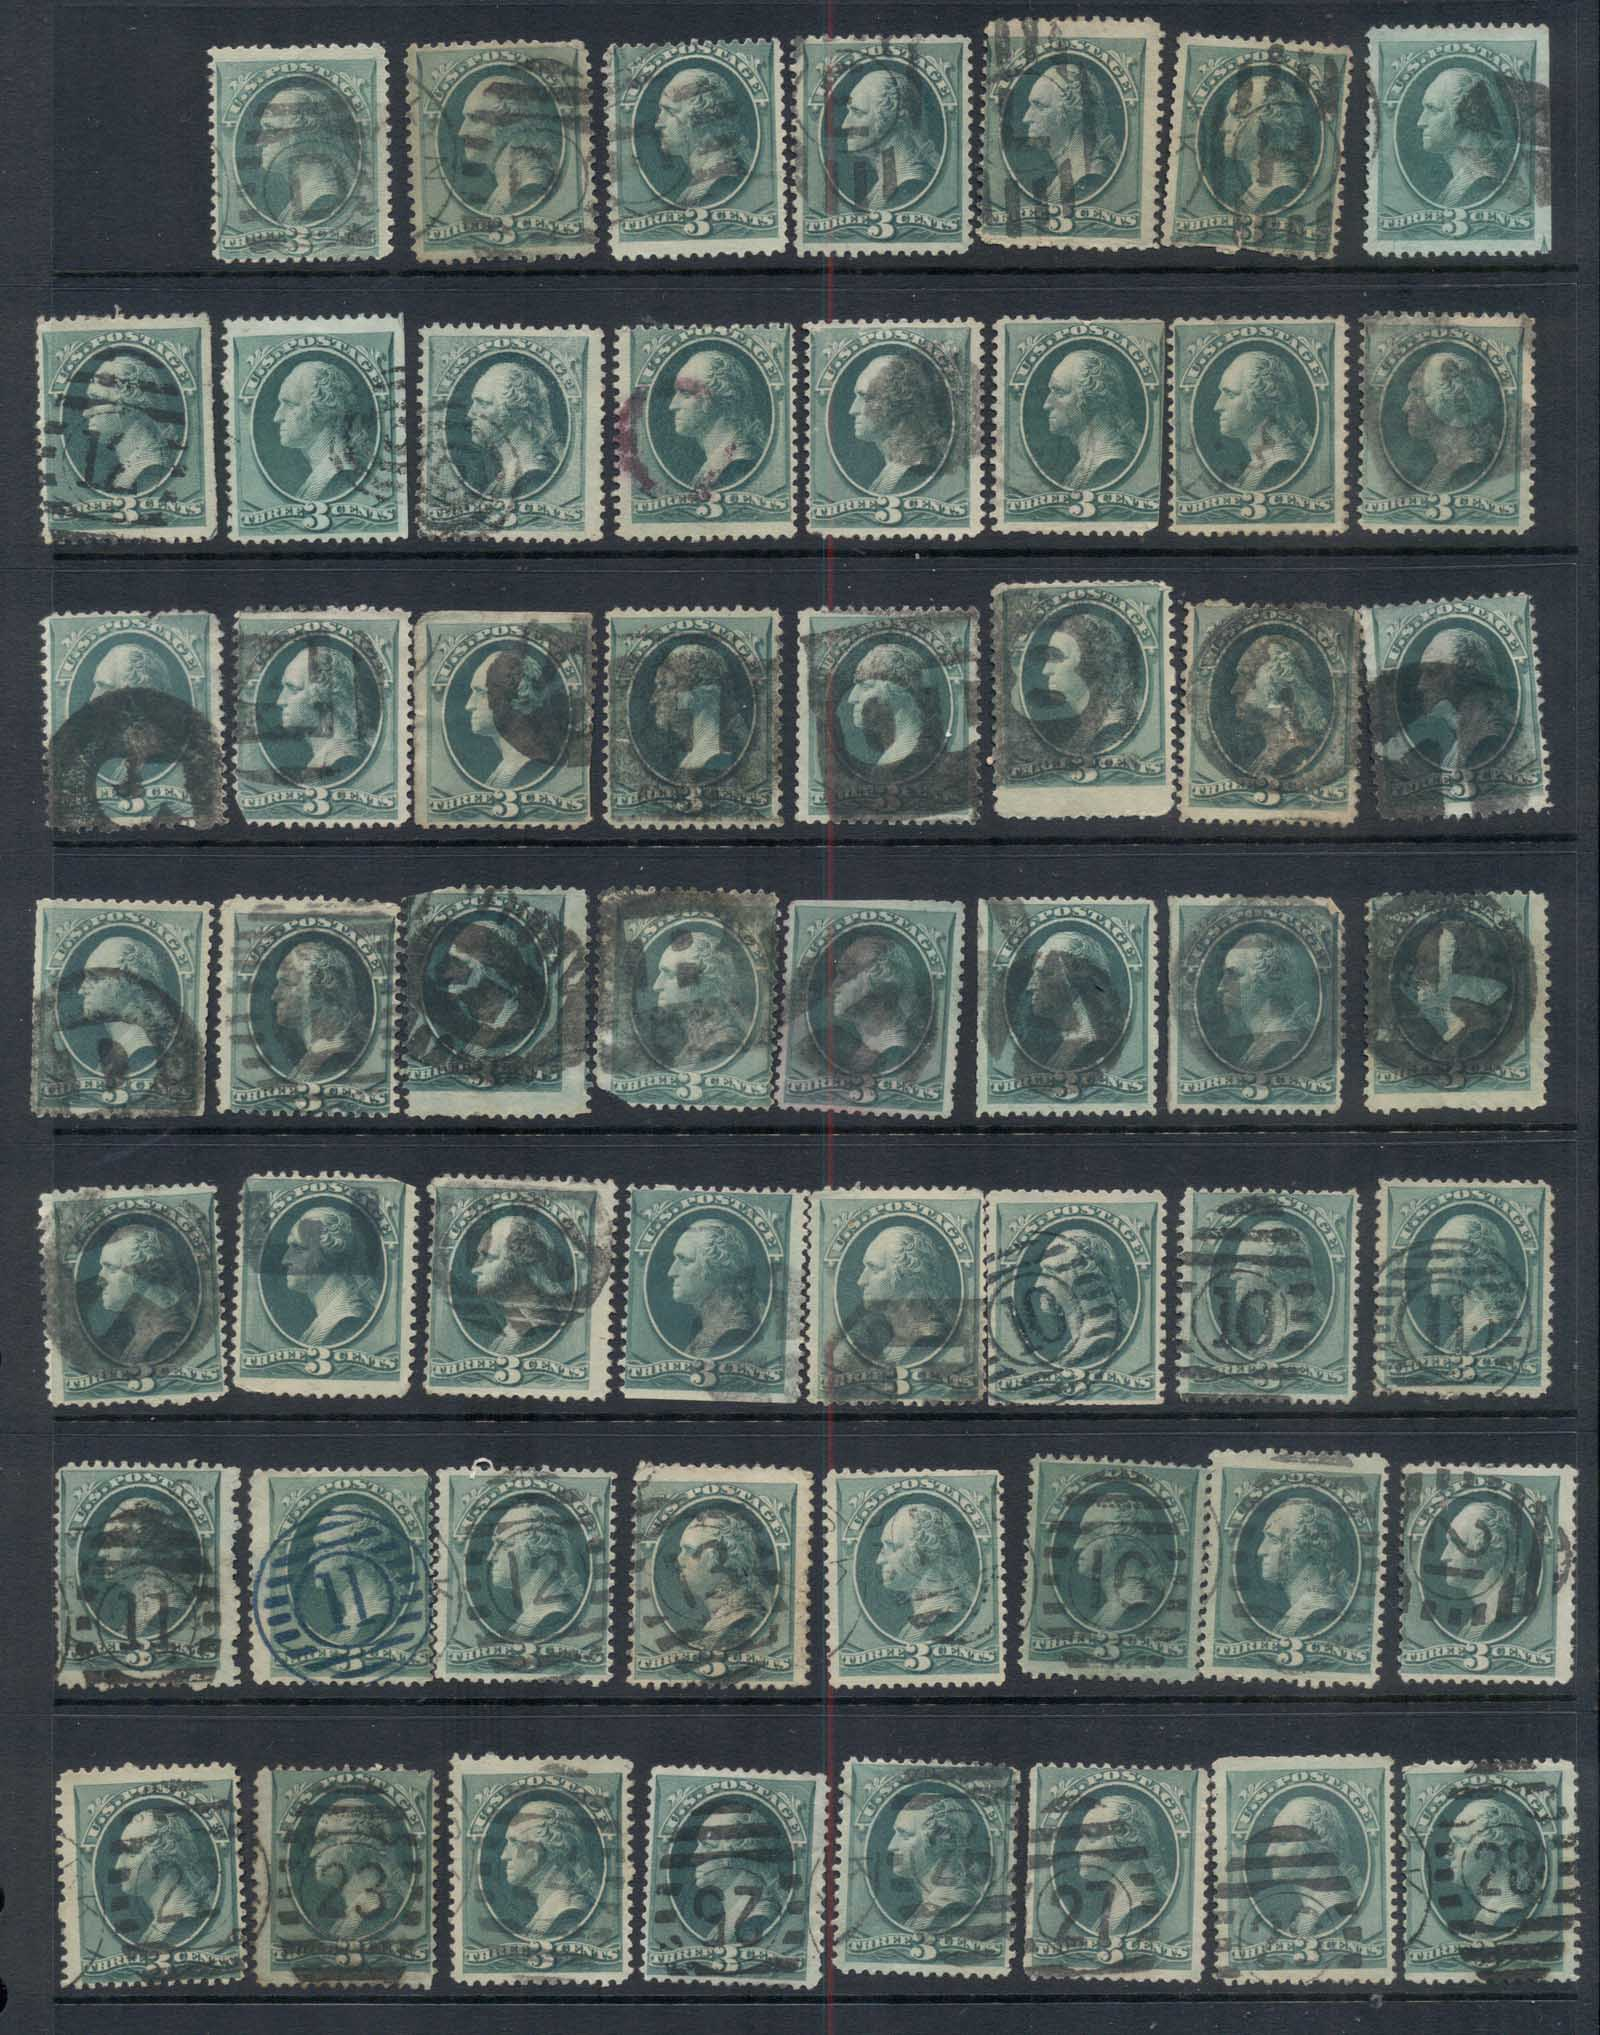 USA 1870-1882 3c Washington green Cancel collection, various printings, some multiples. Great lot to practice identification, 15